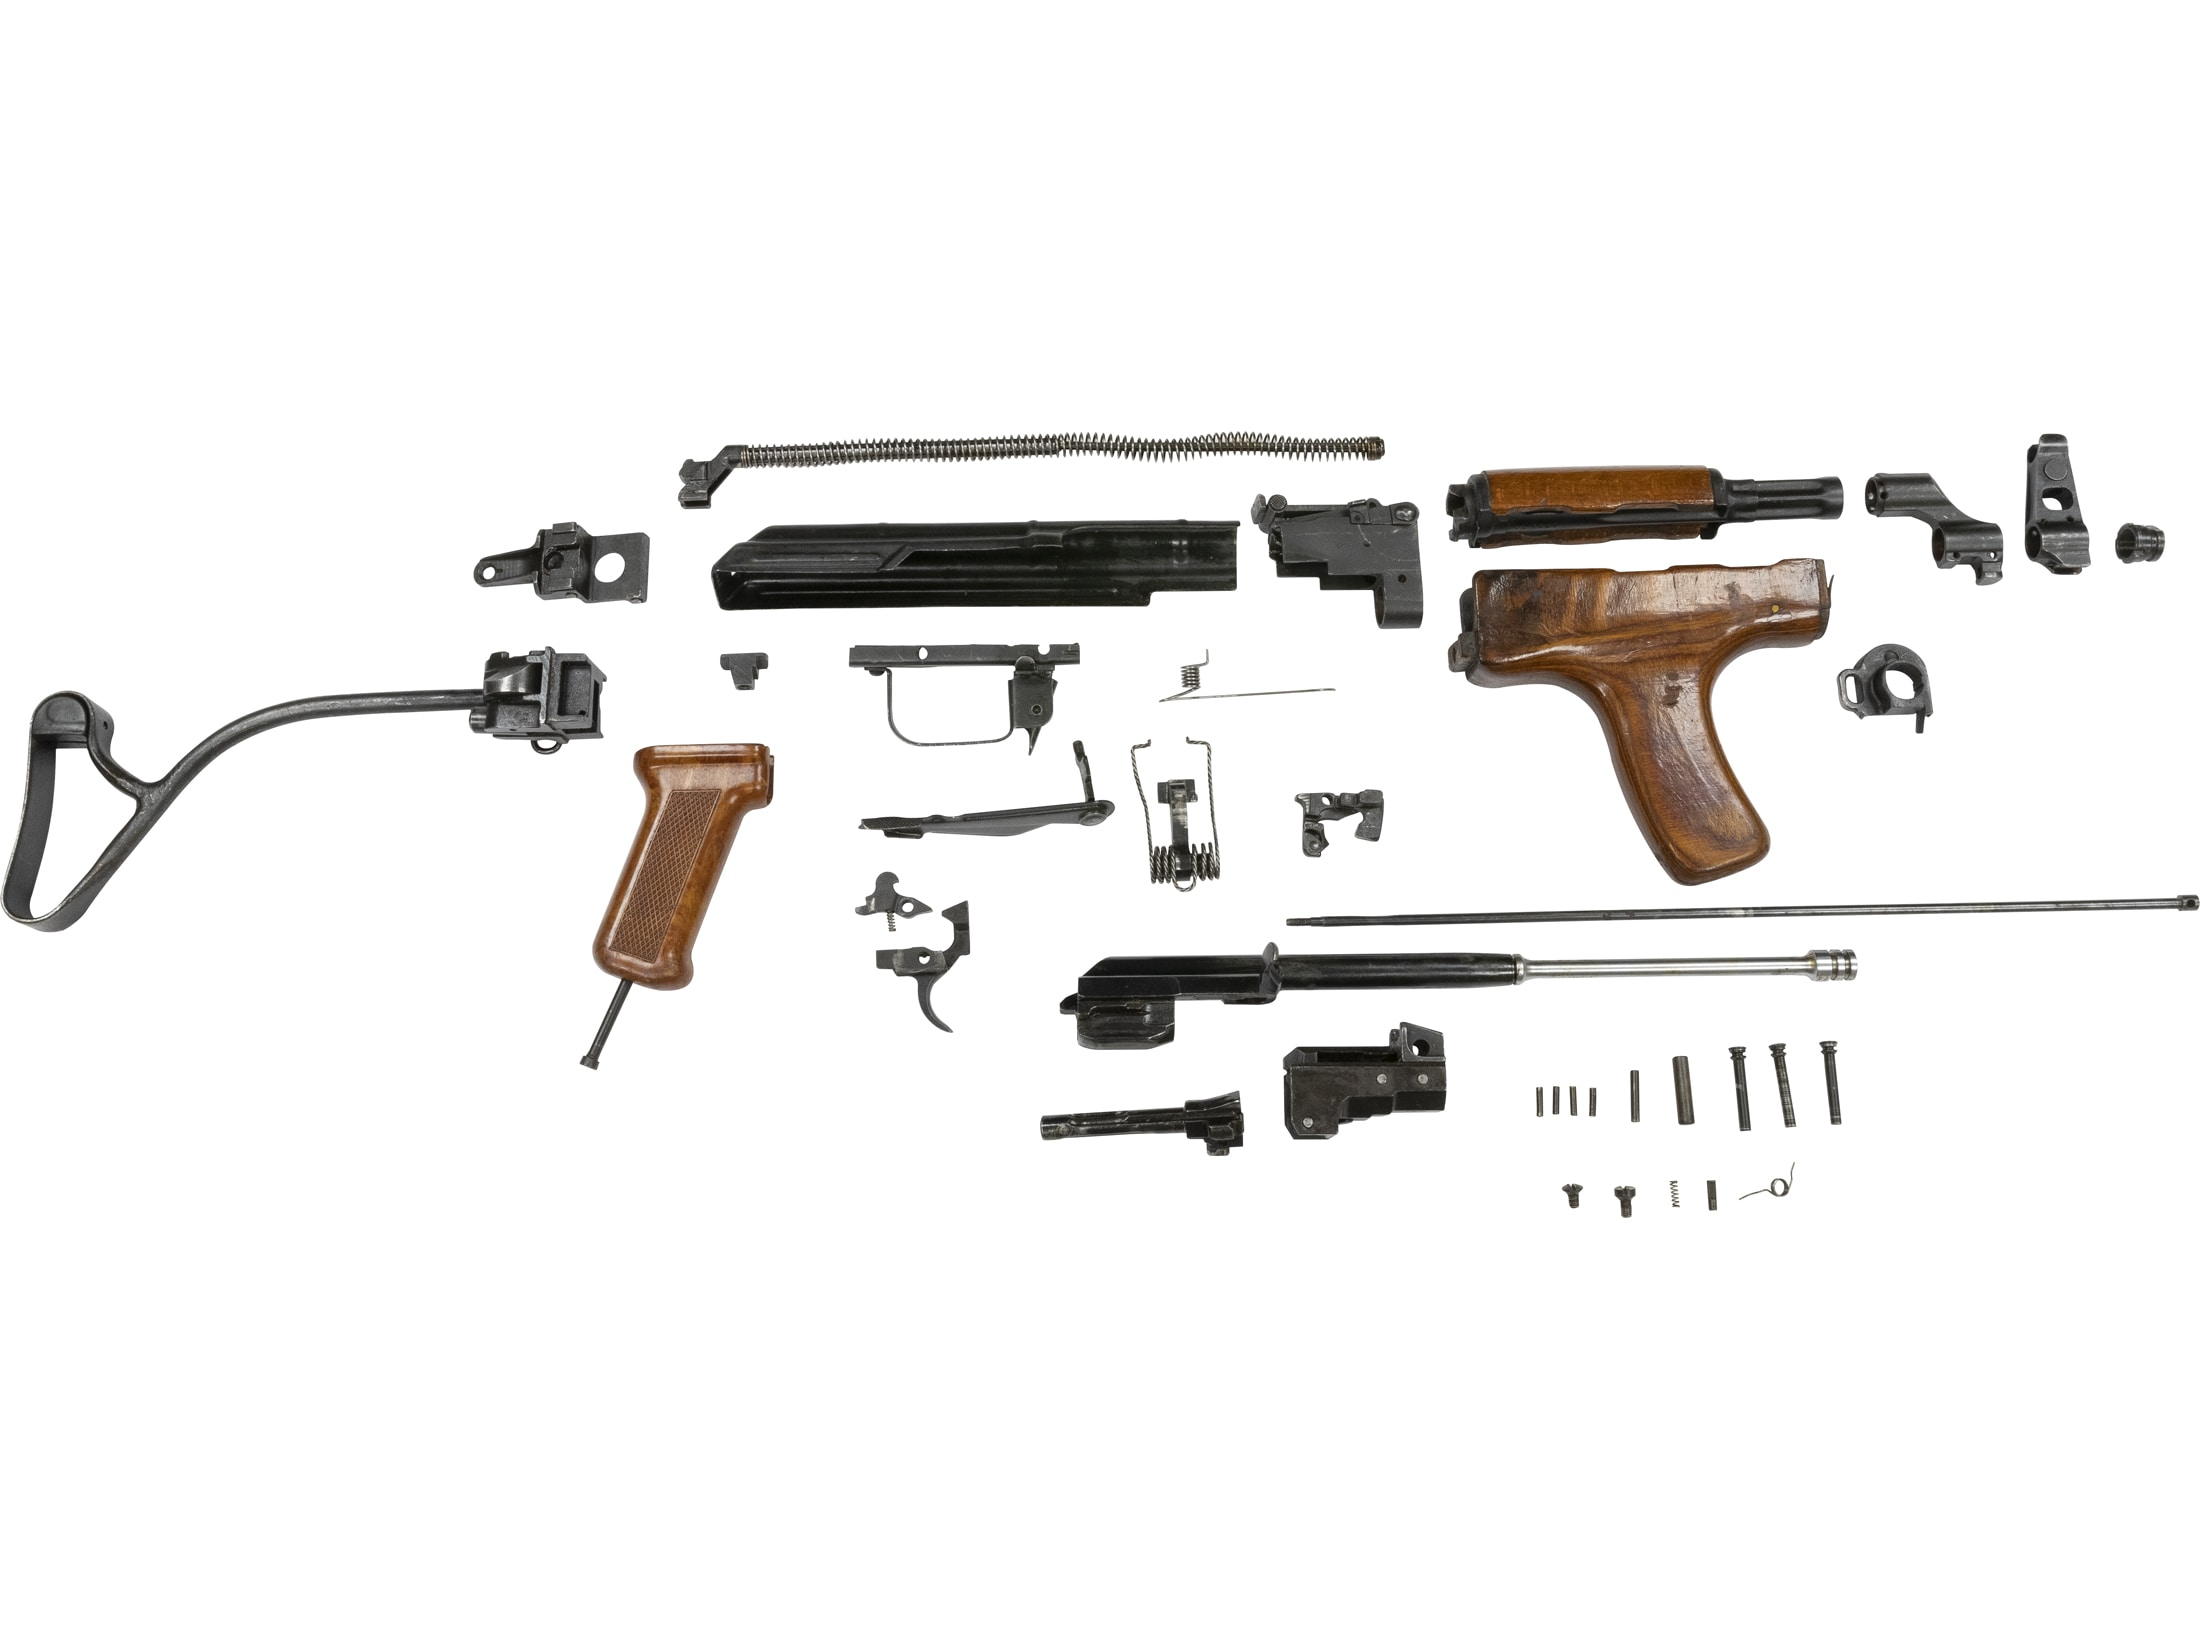 Fotos Schematics Of An Ak 47 Broken Down By Components ... on